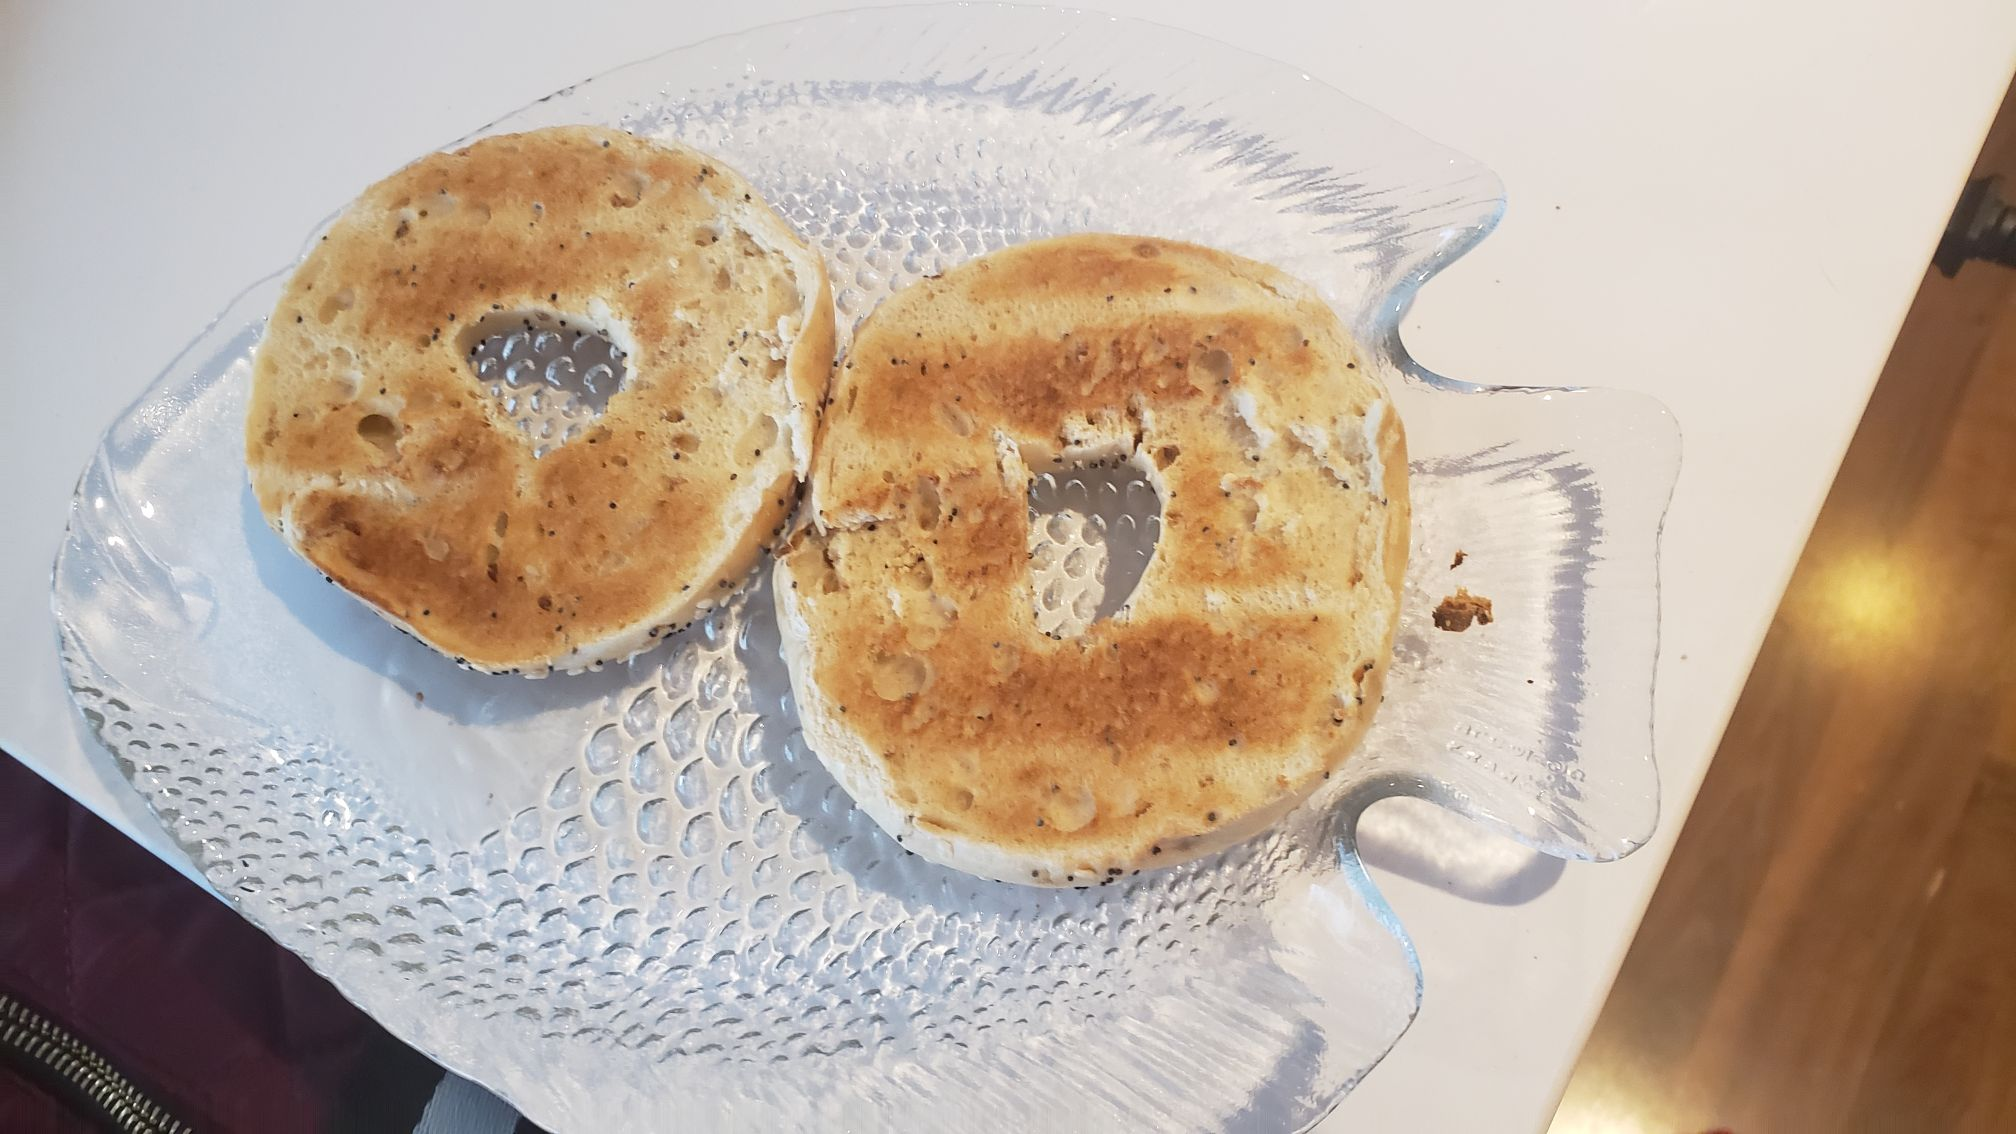 bagel slices on a plate toasted to perfection